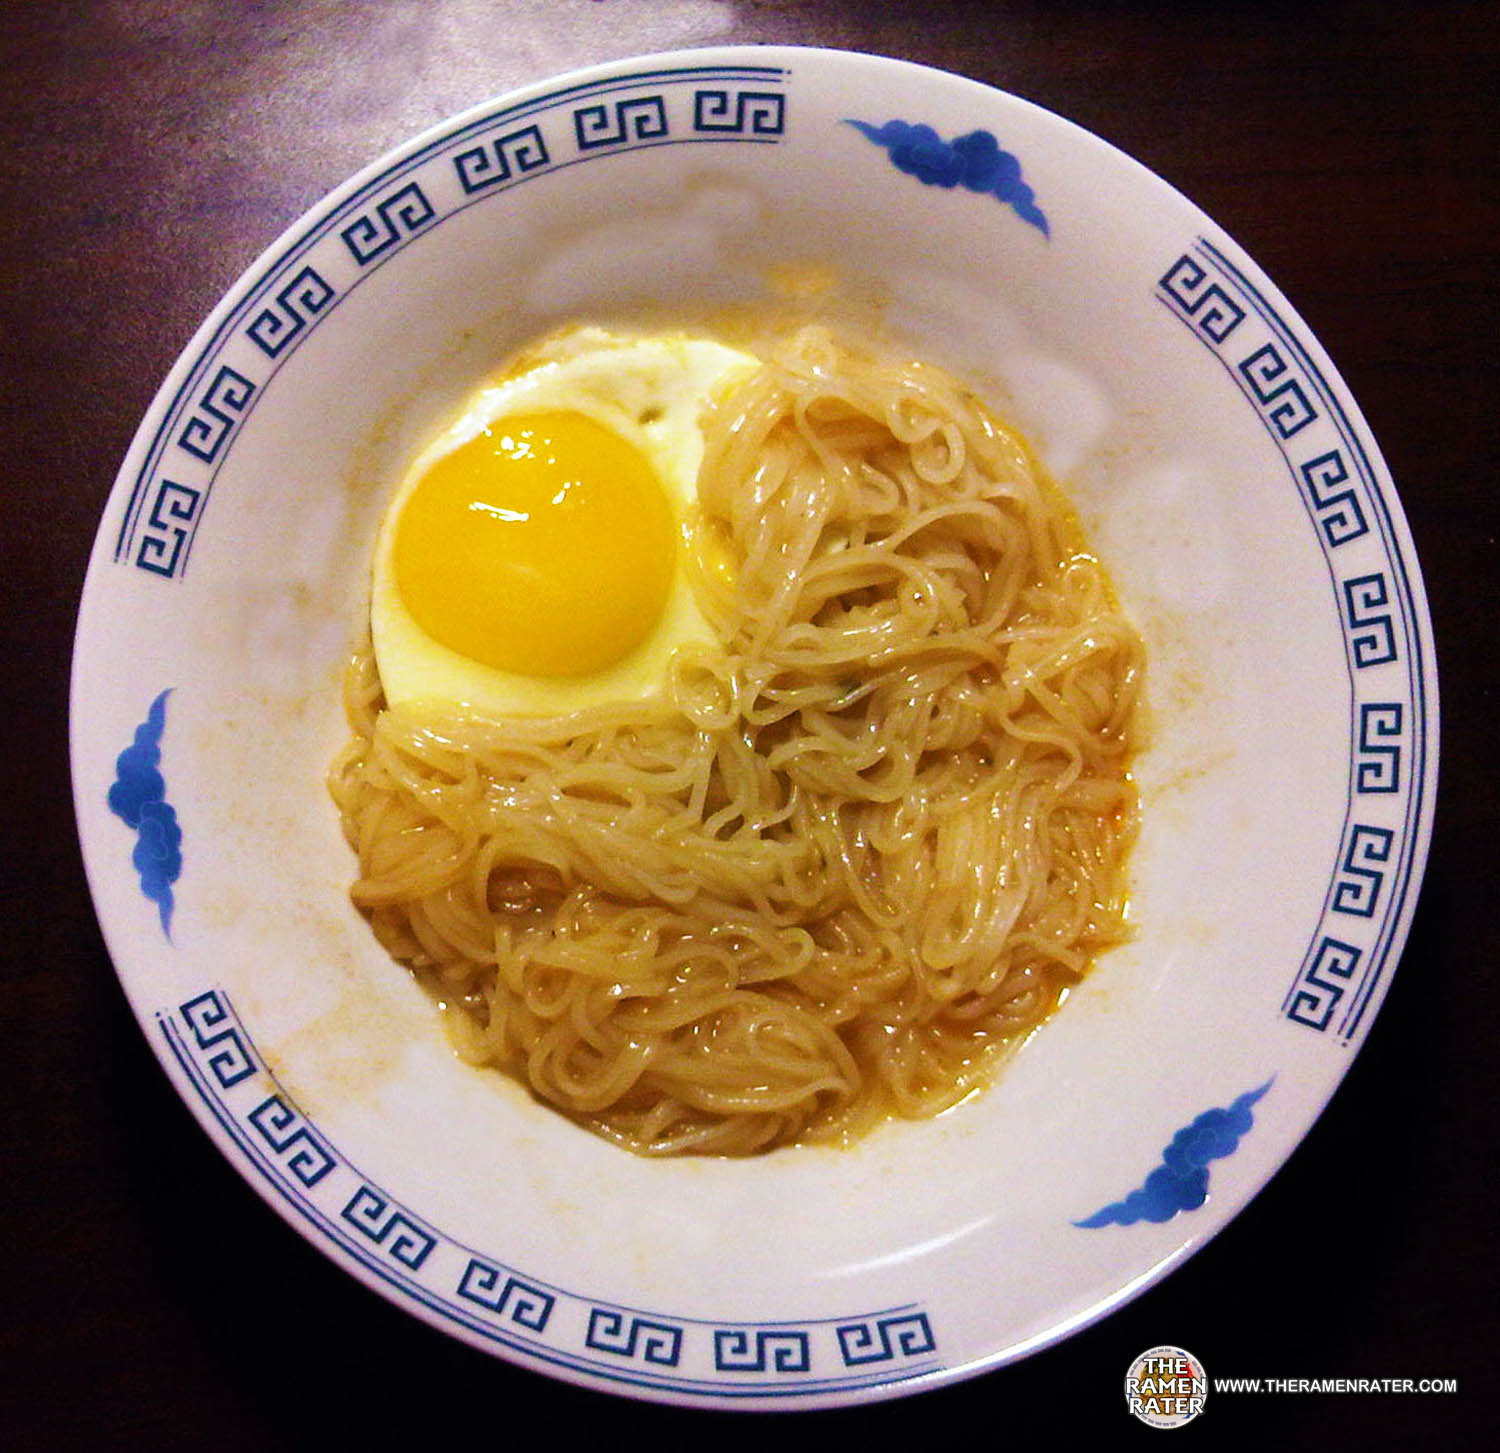 https://www.theramenrater.com/2011/12/01/596-thai-kitchen-lemongrass-chili-instant-rice-noodle-soup/